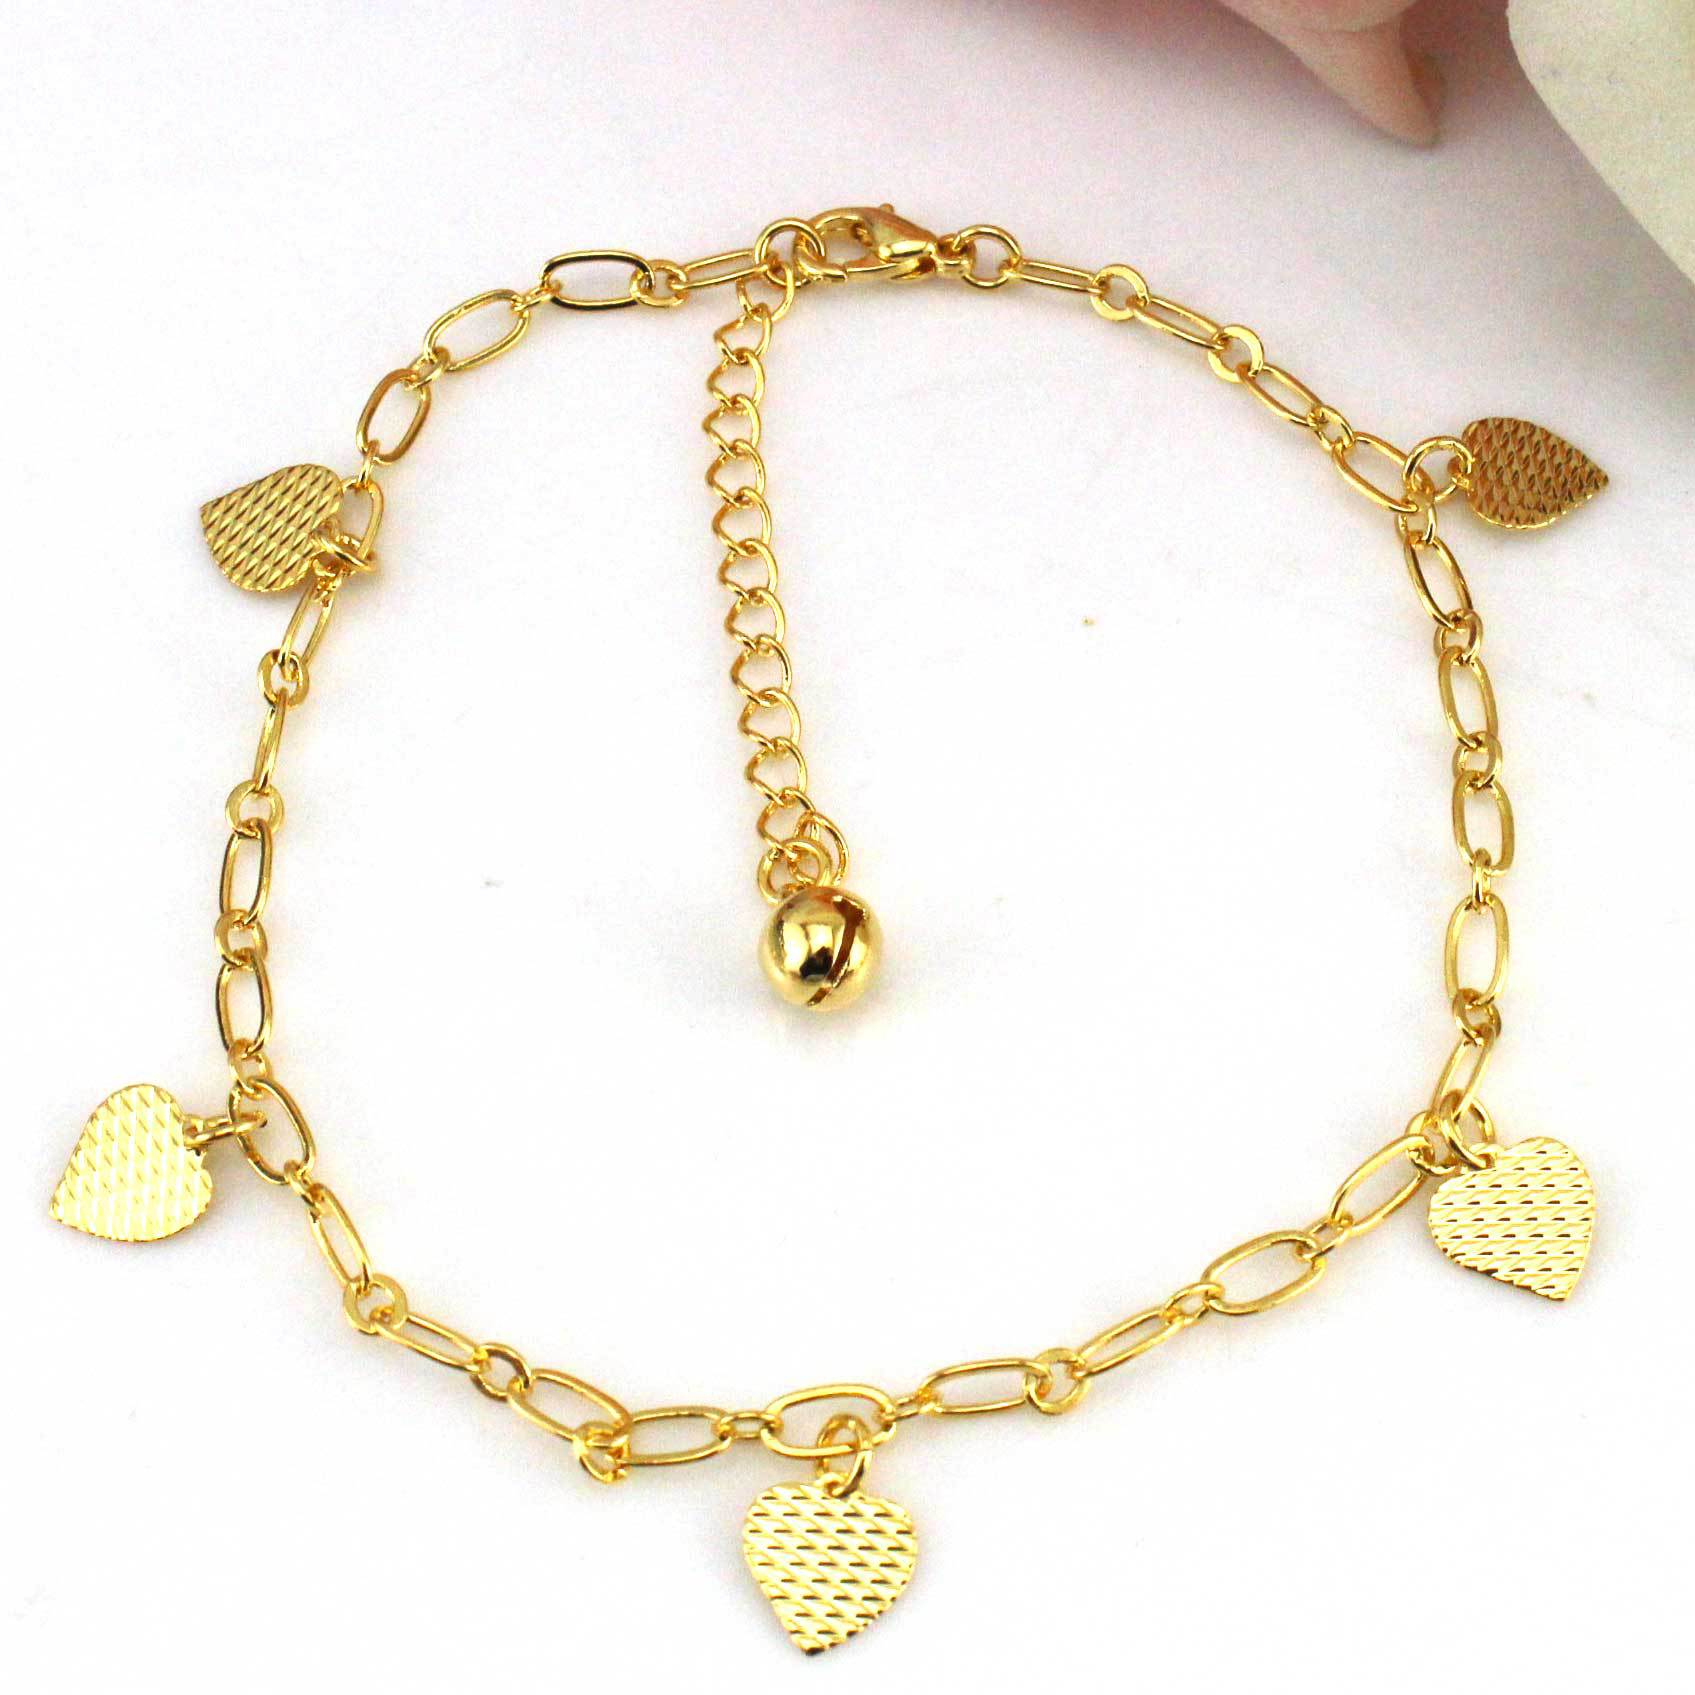 solid bracelet palmbeach diamond detail heart cut at ankle open in bracelets with charms jewelry products anklet cfm gold yellow